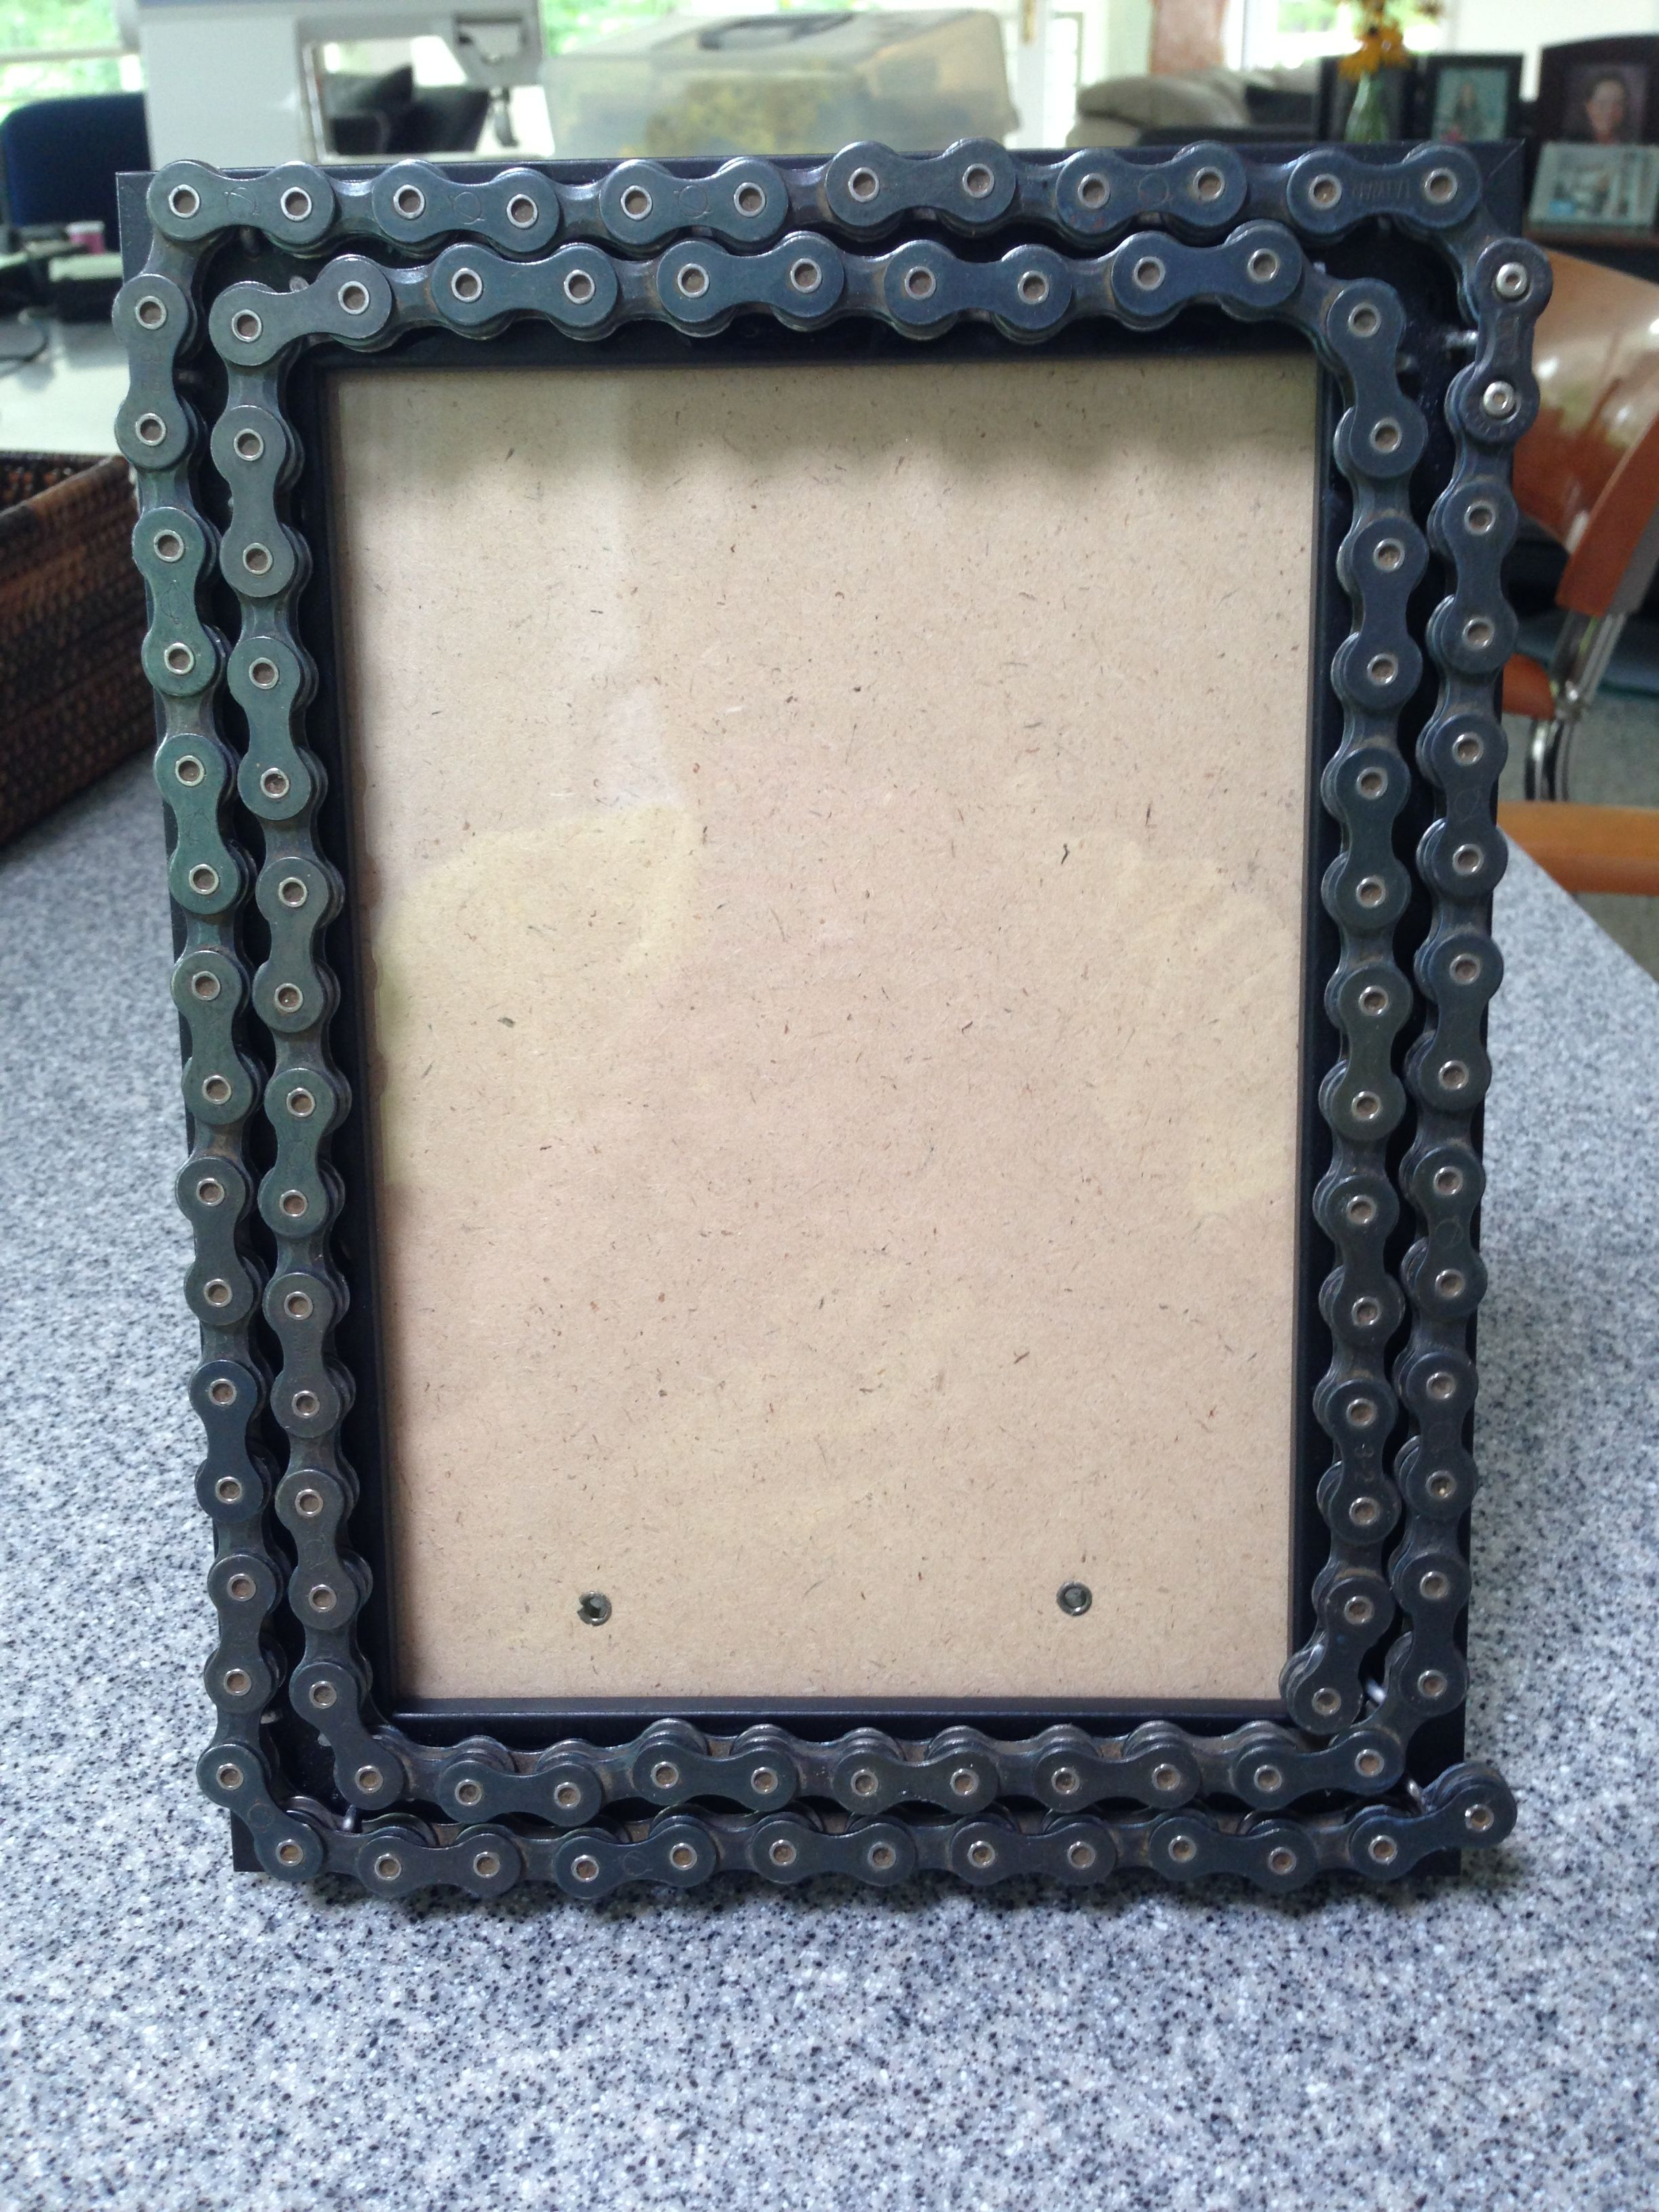 diy bike chain picture frame | Nicki\'s Projects | Pinterest | DIY ...